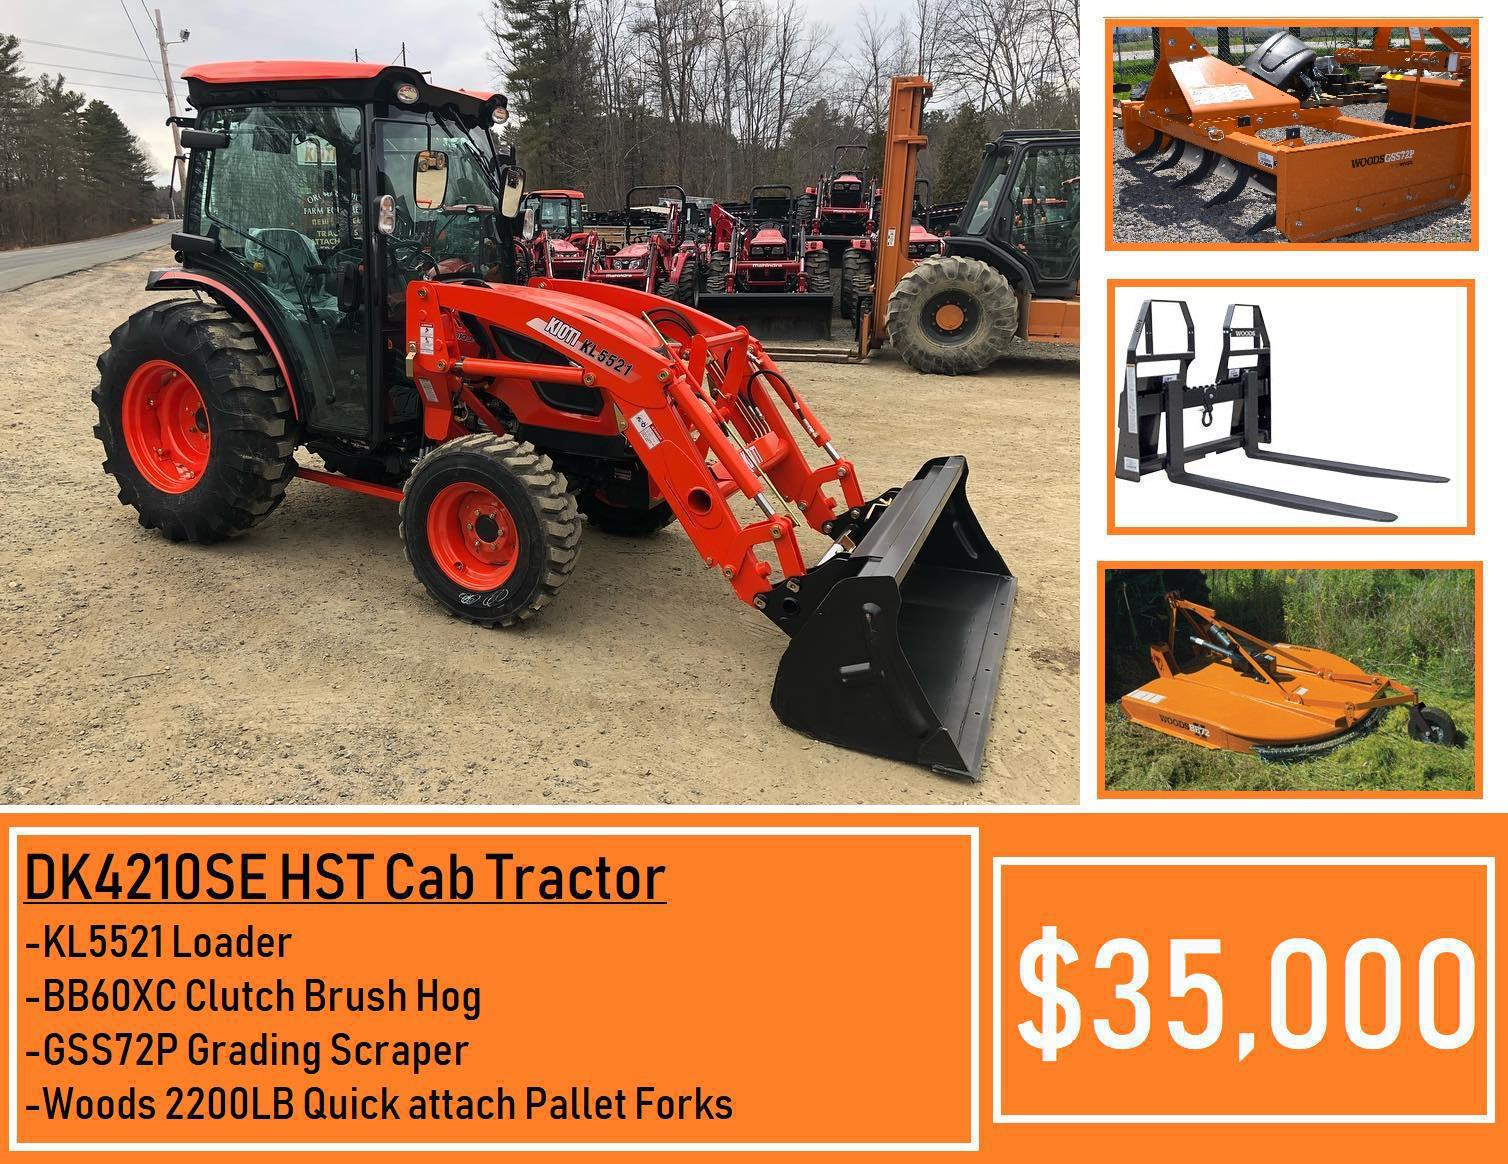 Kioti Package Deal #13 - Kioti DK4210SE HST CAB Tractor, Loader, 72